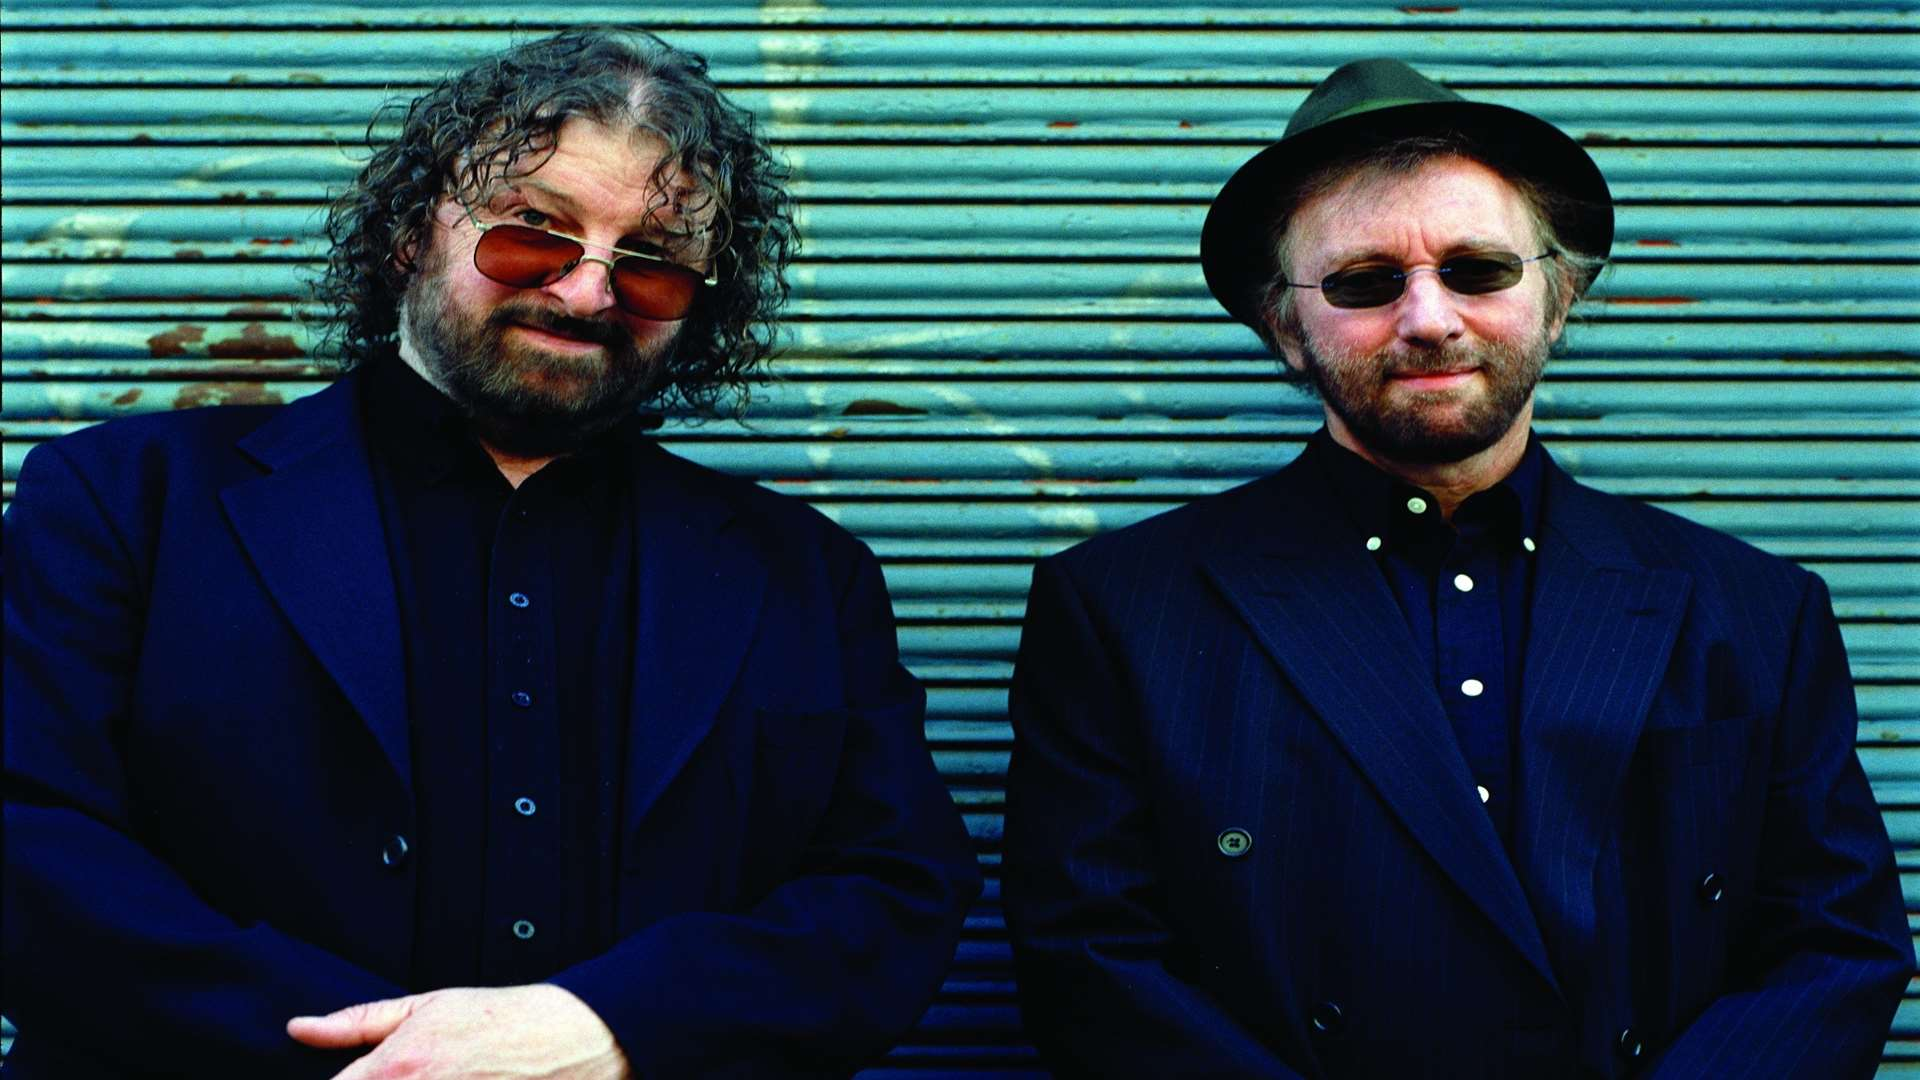 Chas and Dave will play Maidstone's Big Day Out